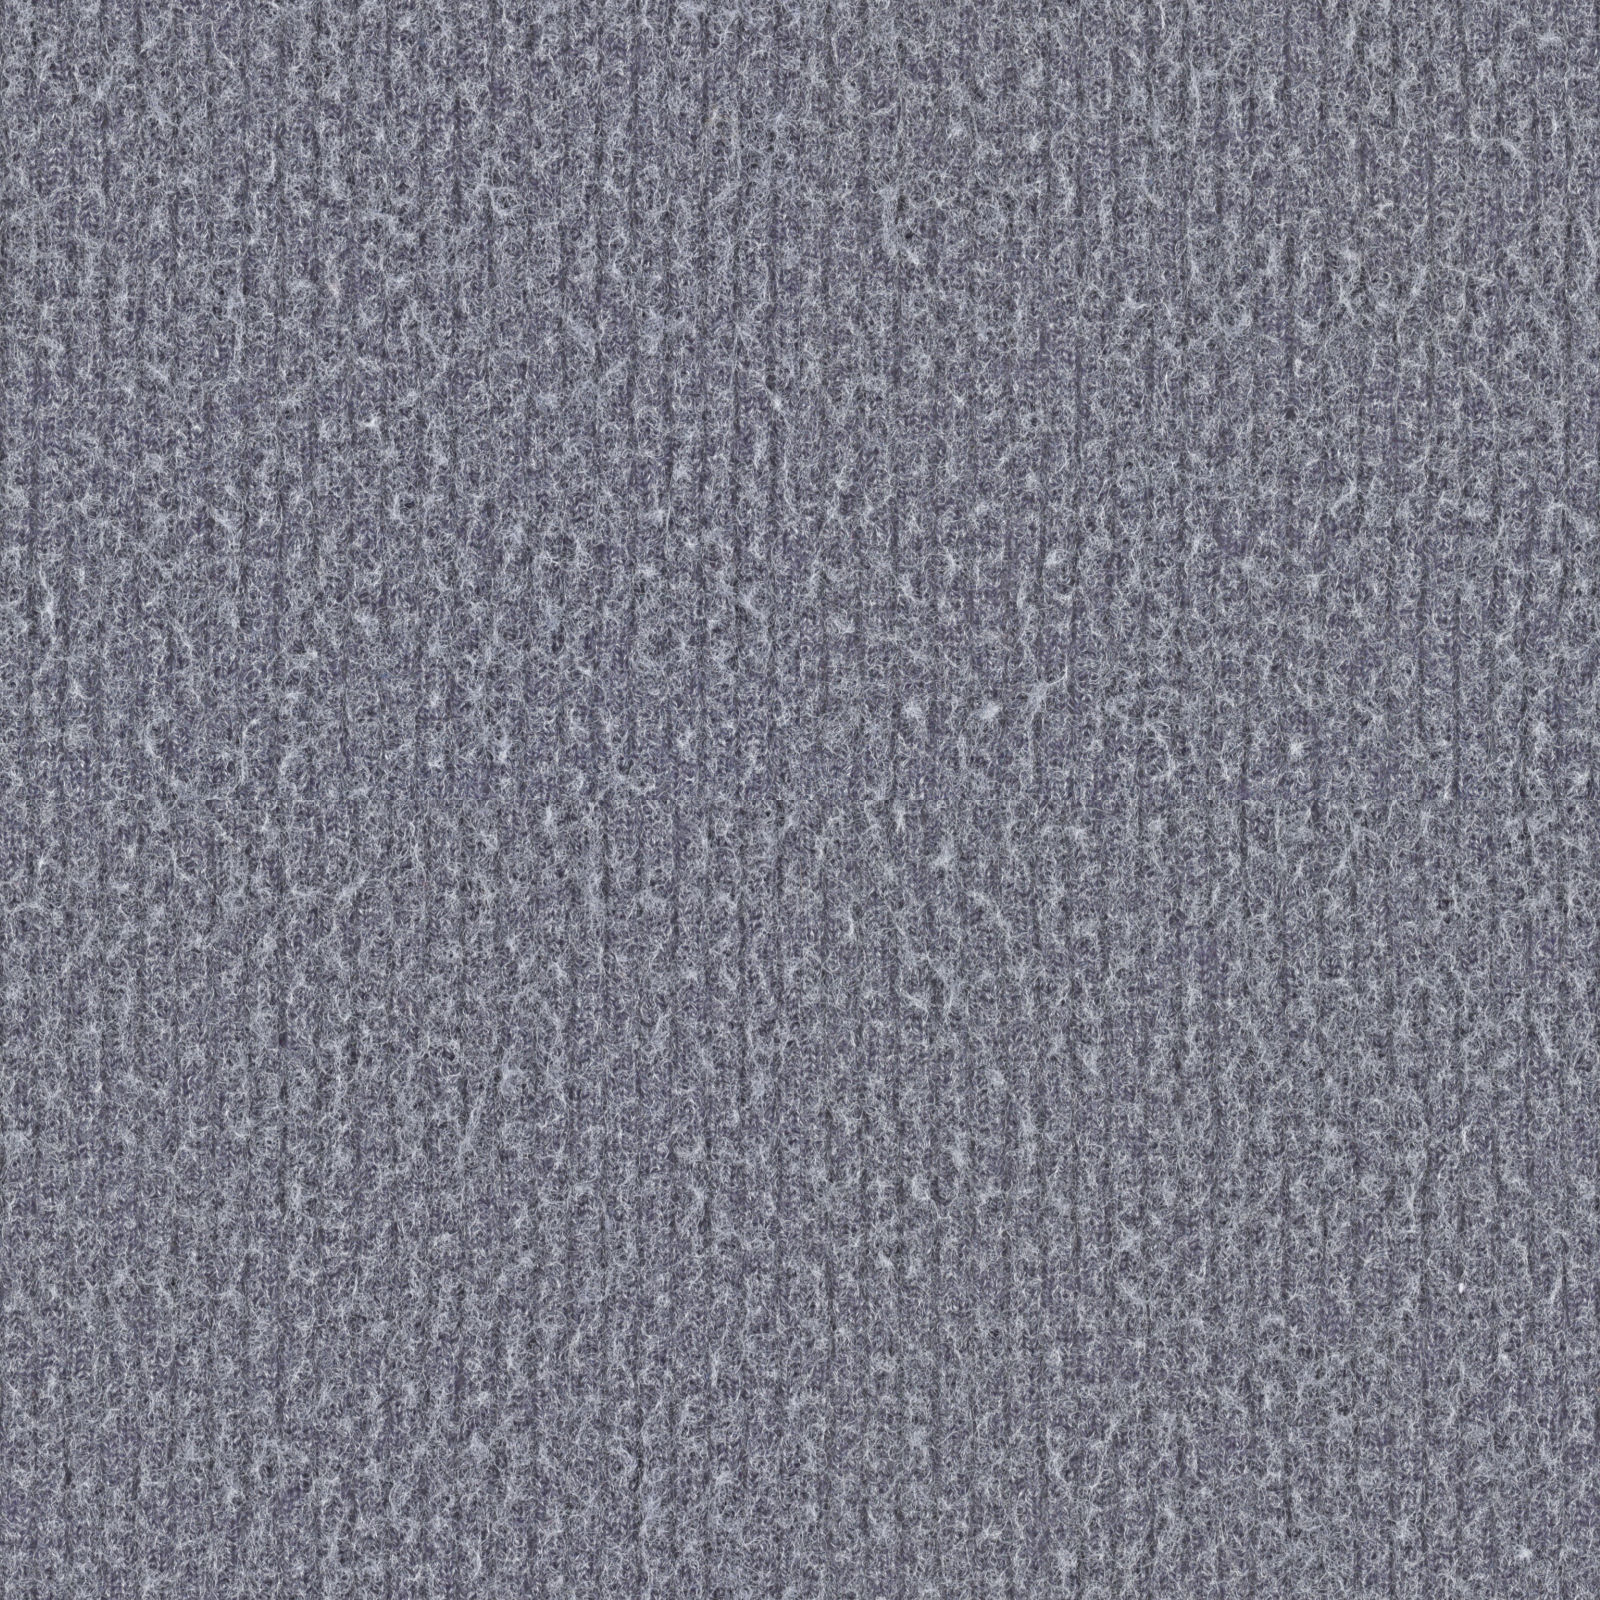 Carpet Gray Texture Carpet Vidalondon